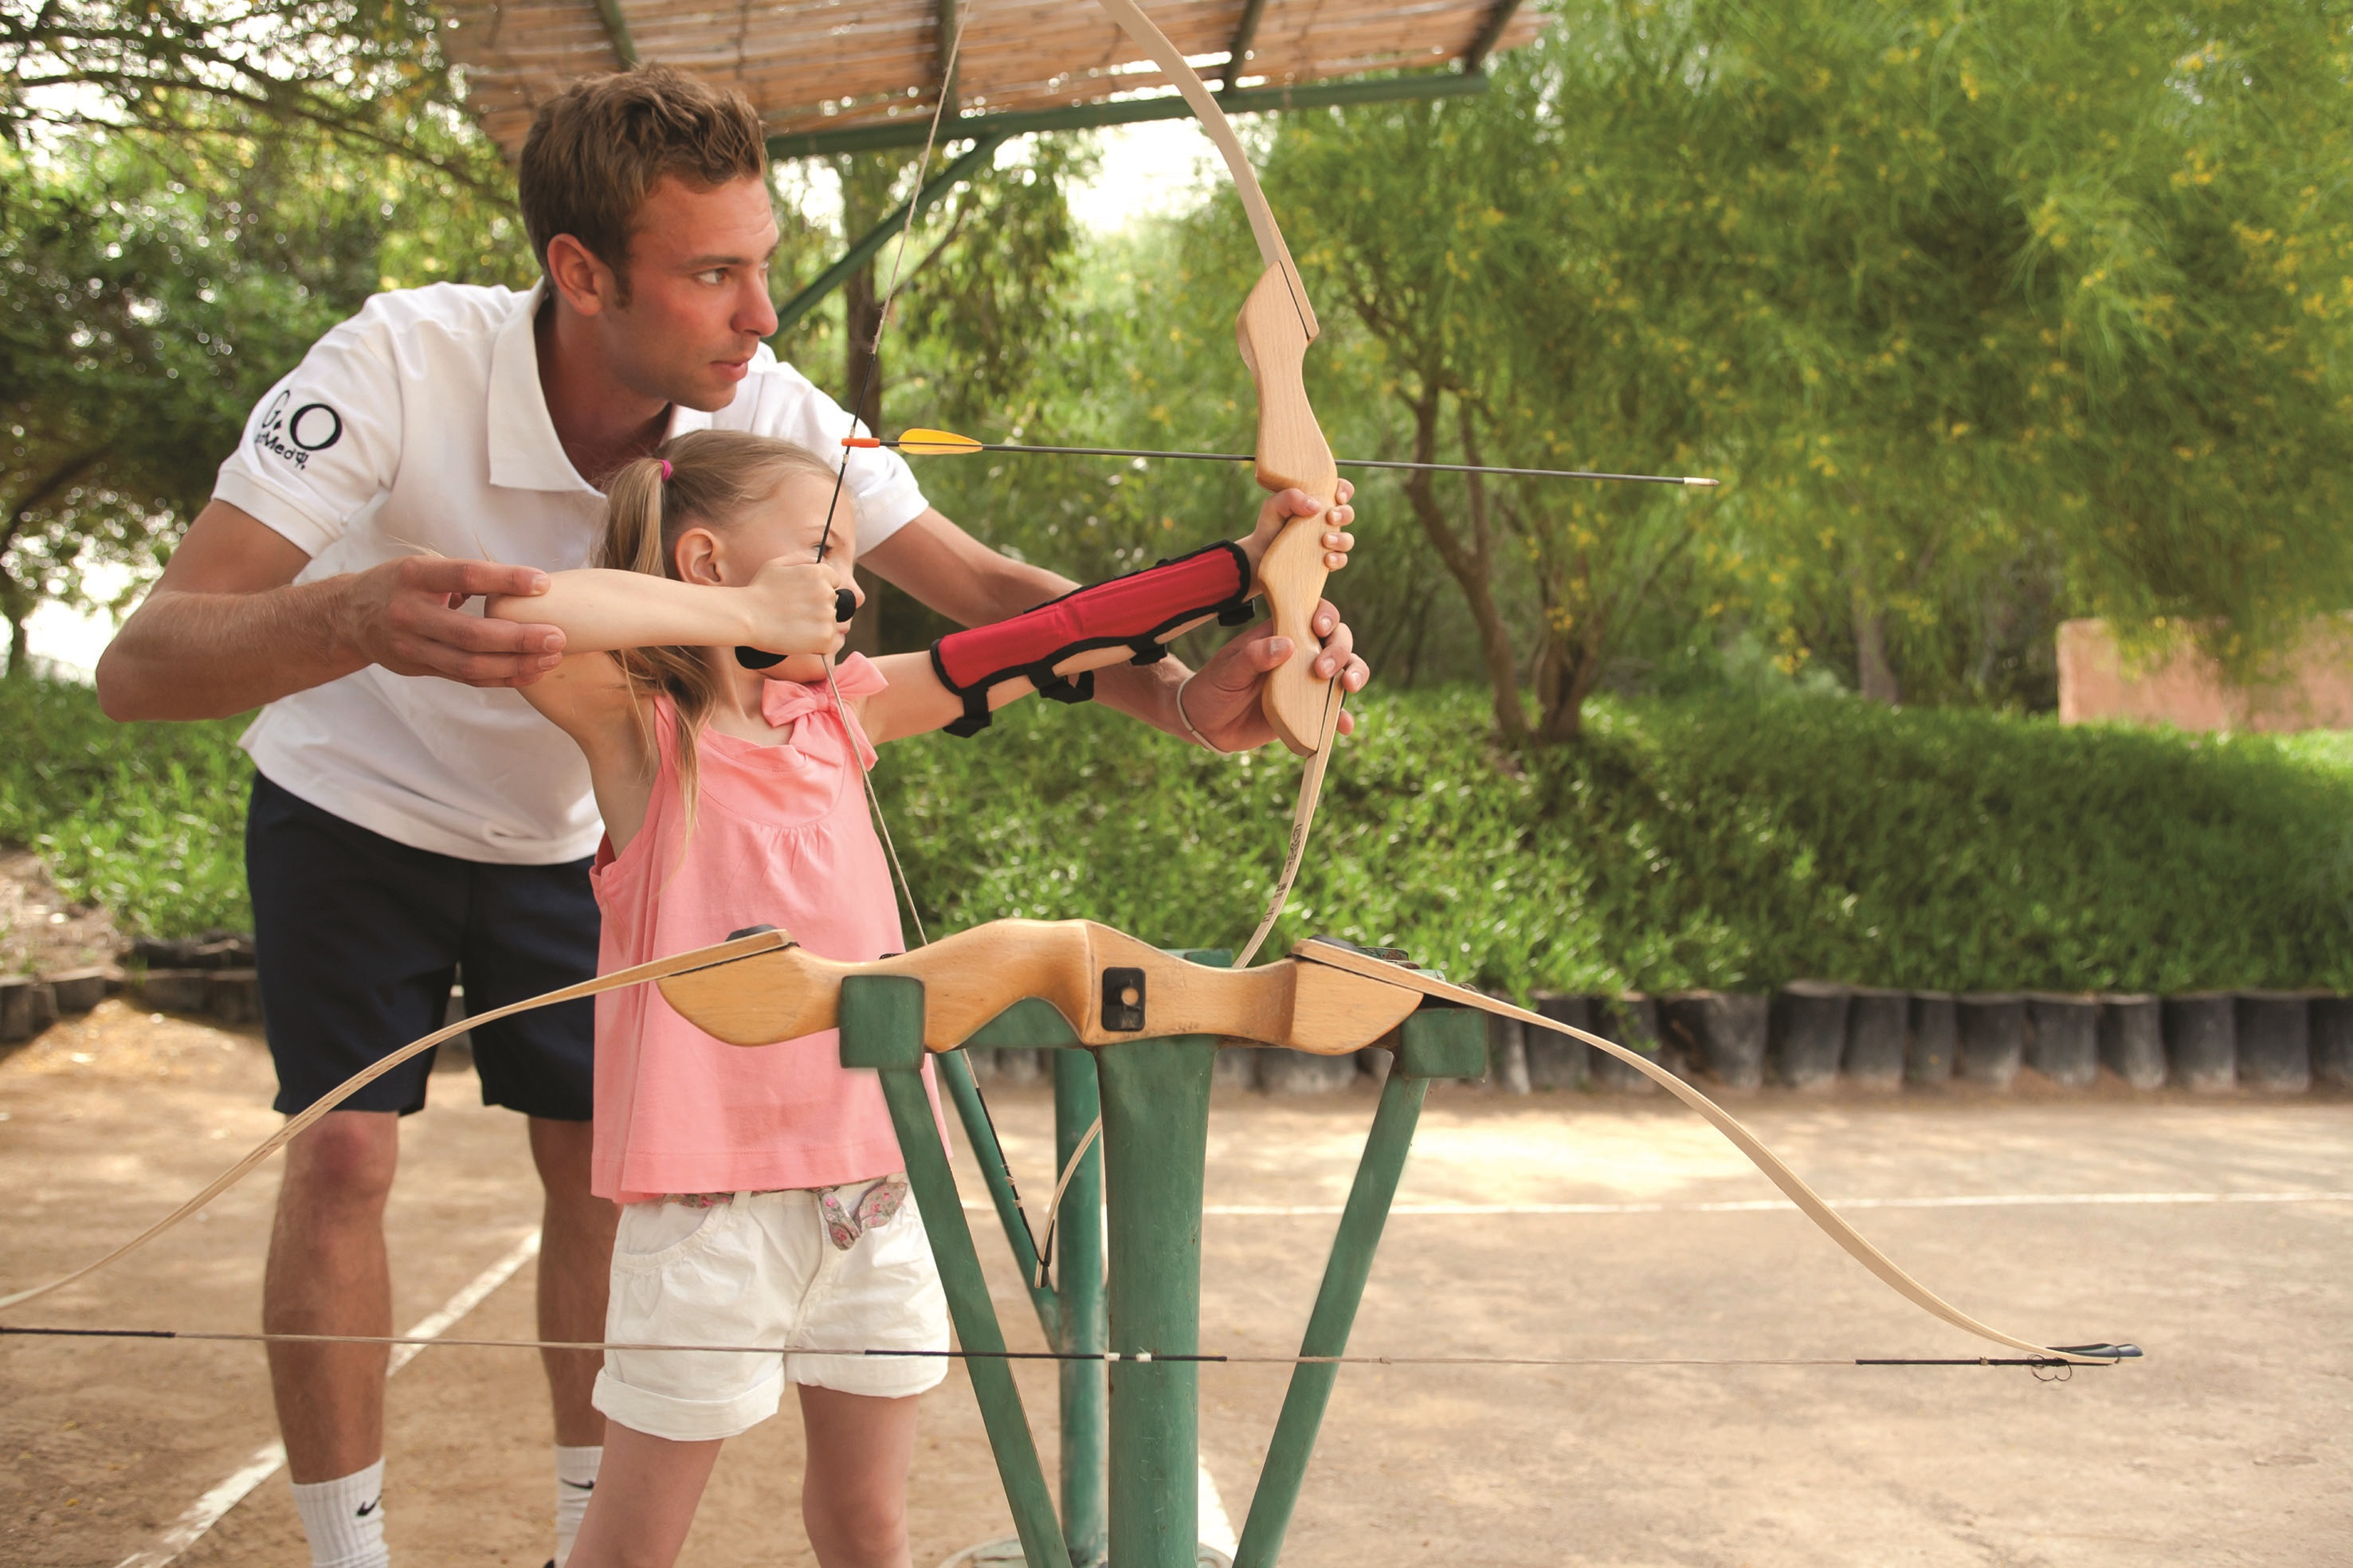 80-81 Offspring Club Med Kids archery class at Bali